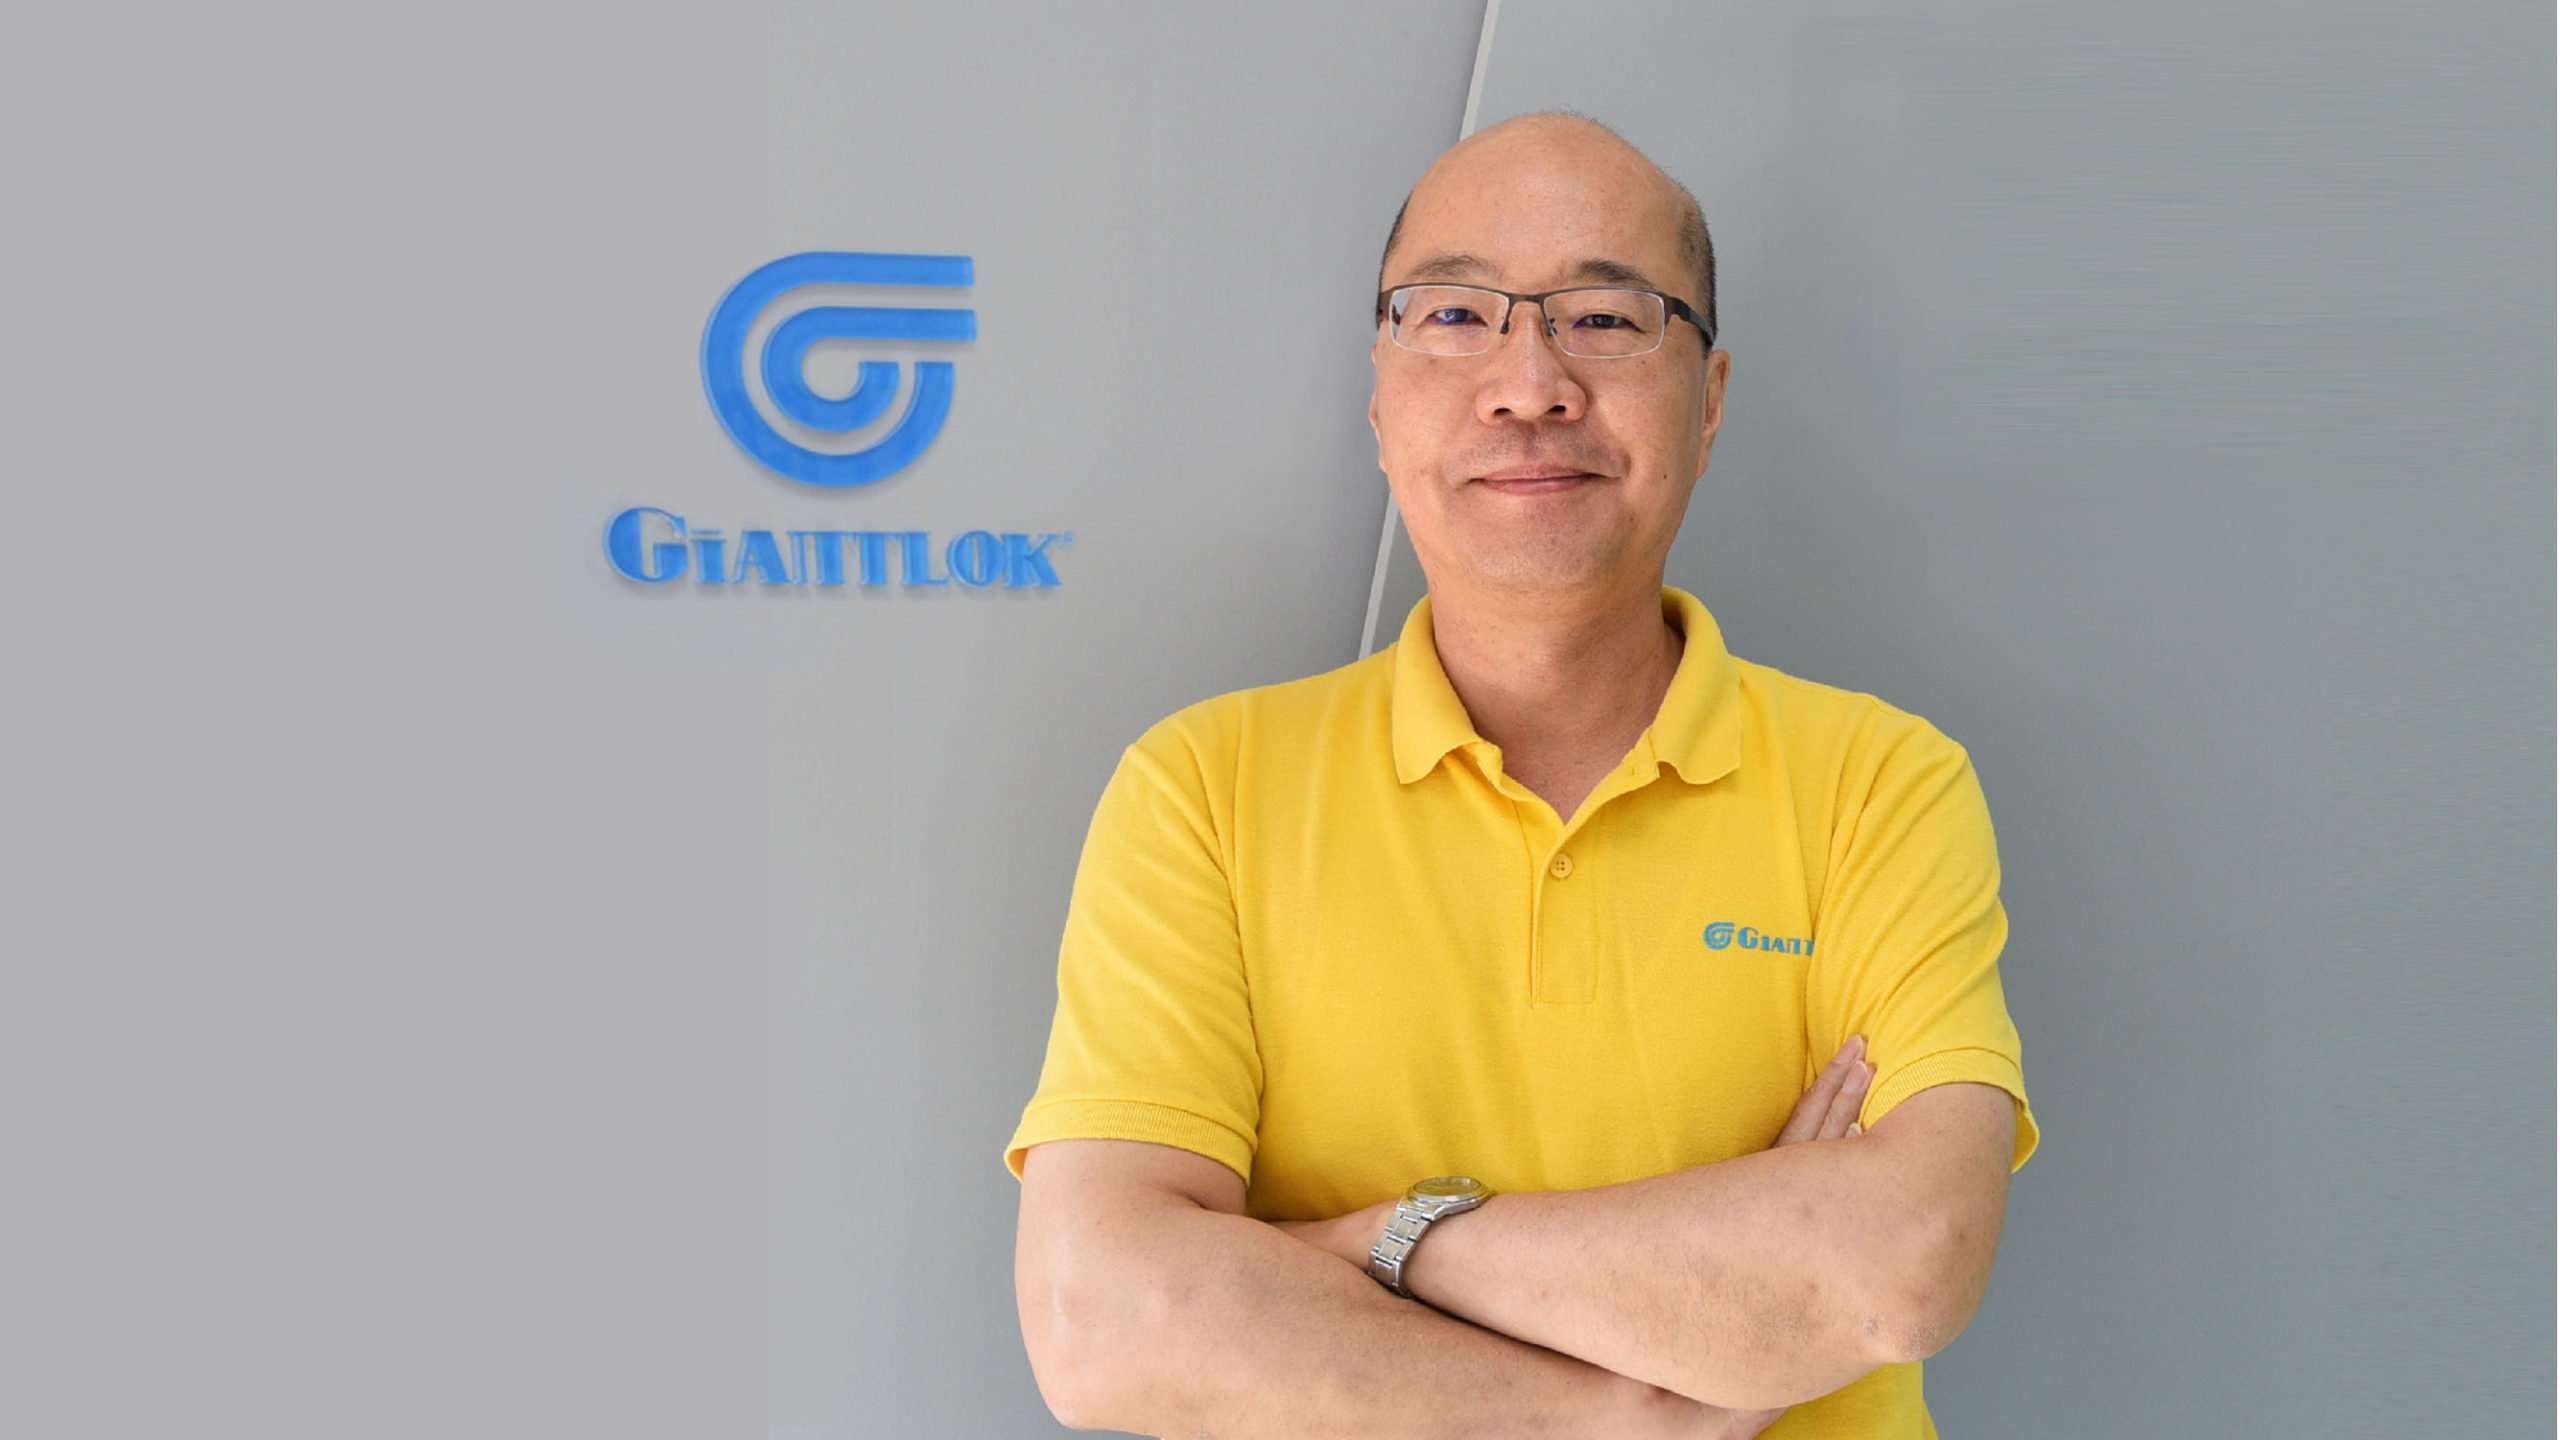 Giantlok consulting service